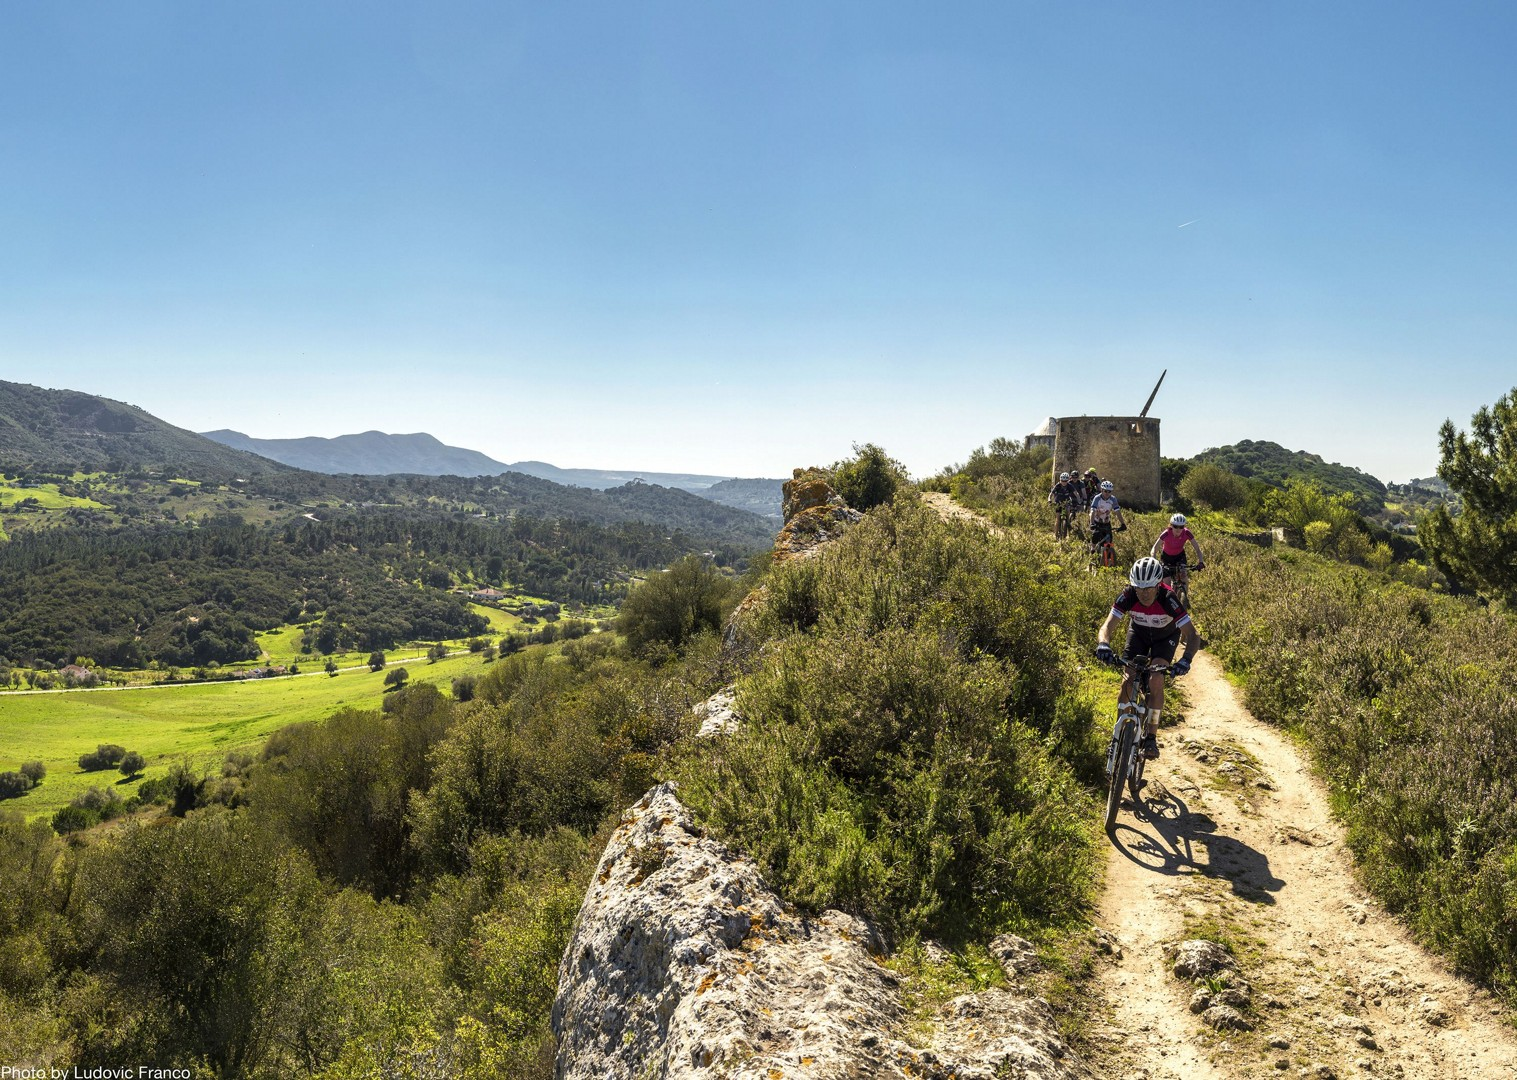 group-singletrack-exploration-cycling-holiday-on-atlantic-coast-portugal.jpg - Portugal - Atlantic Trails - Mountain Biking